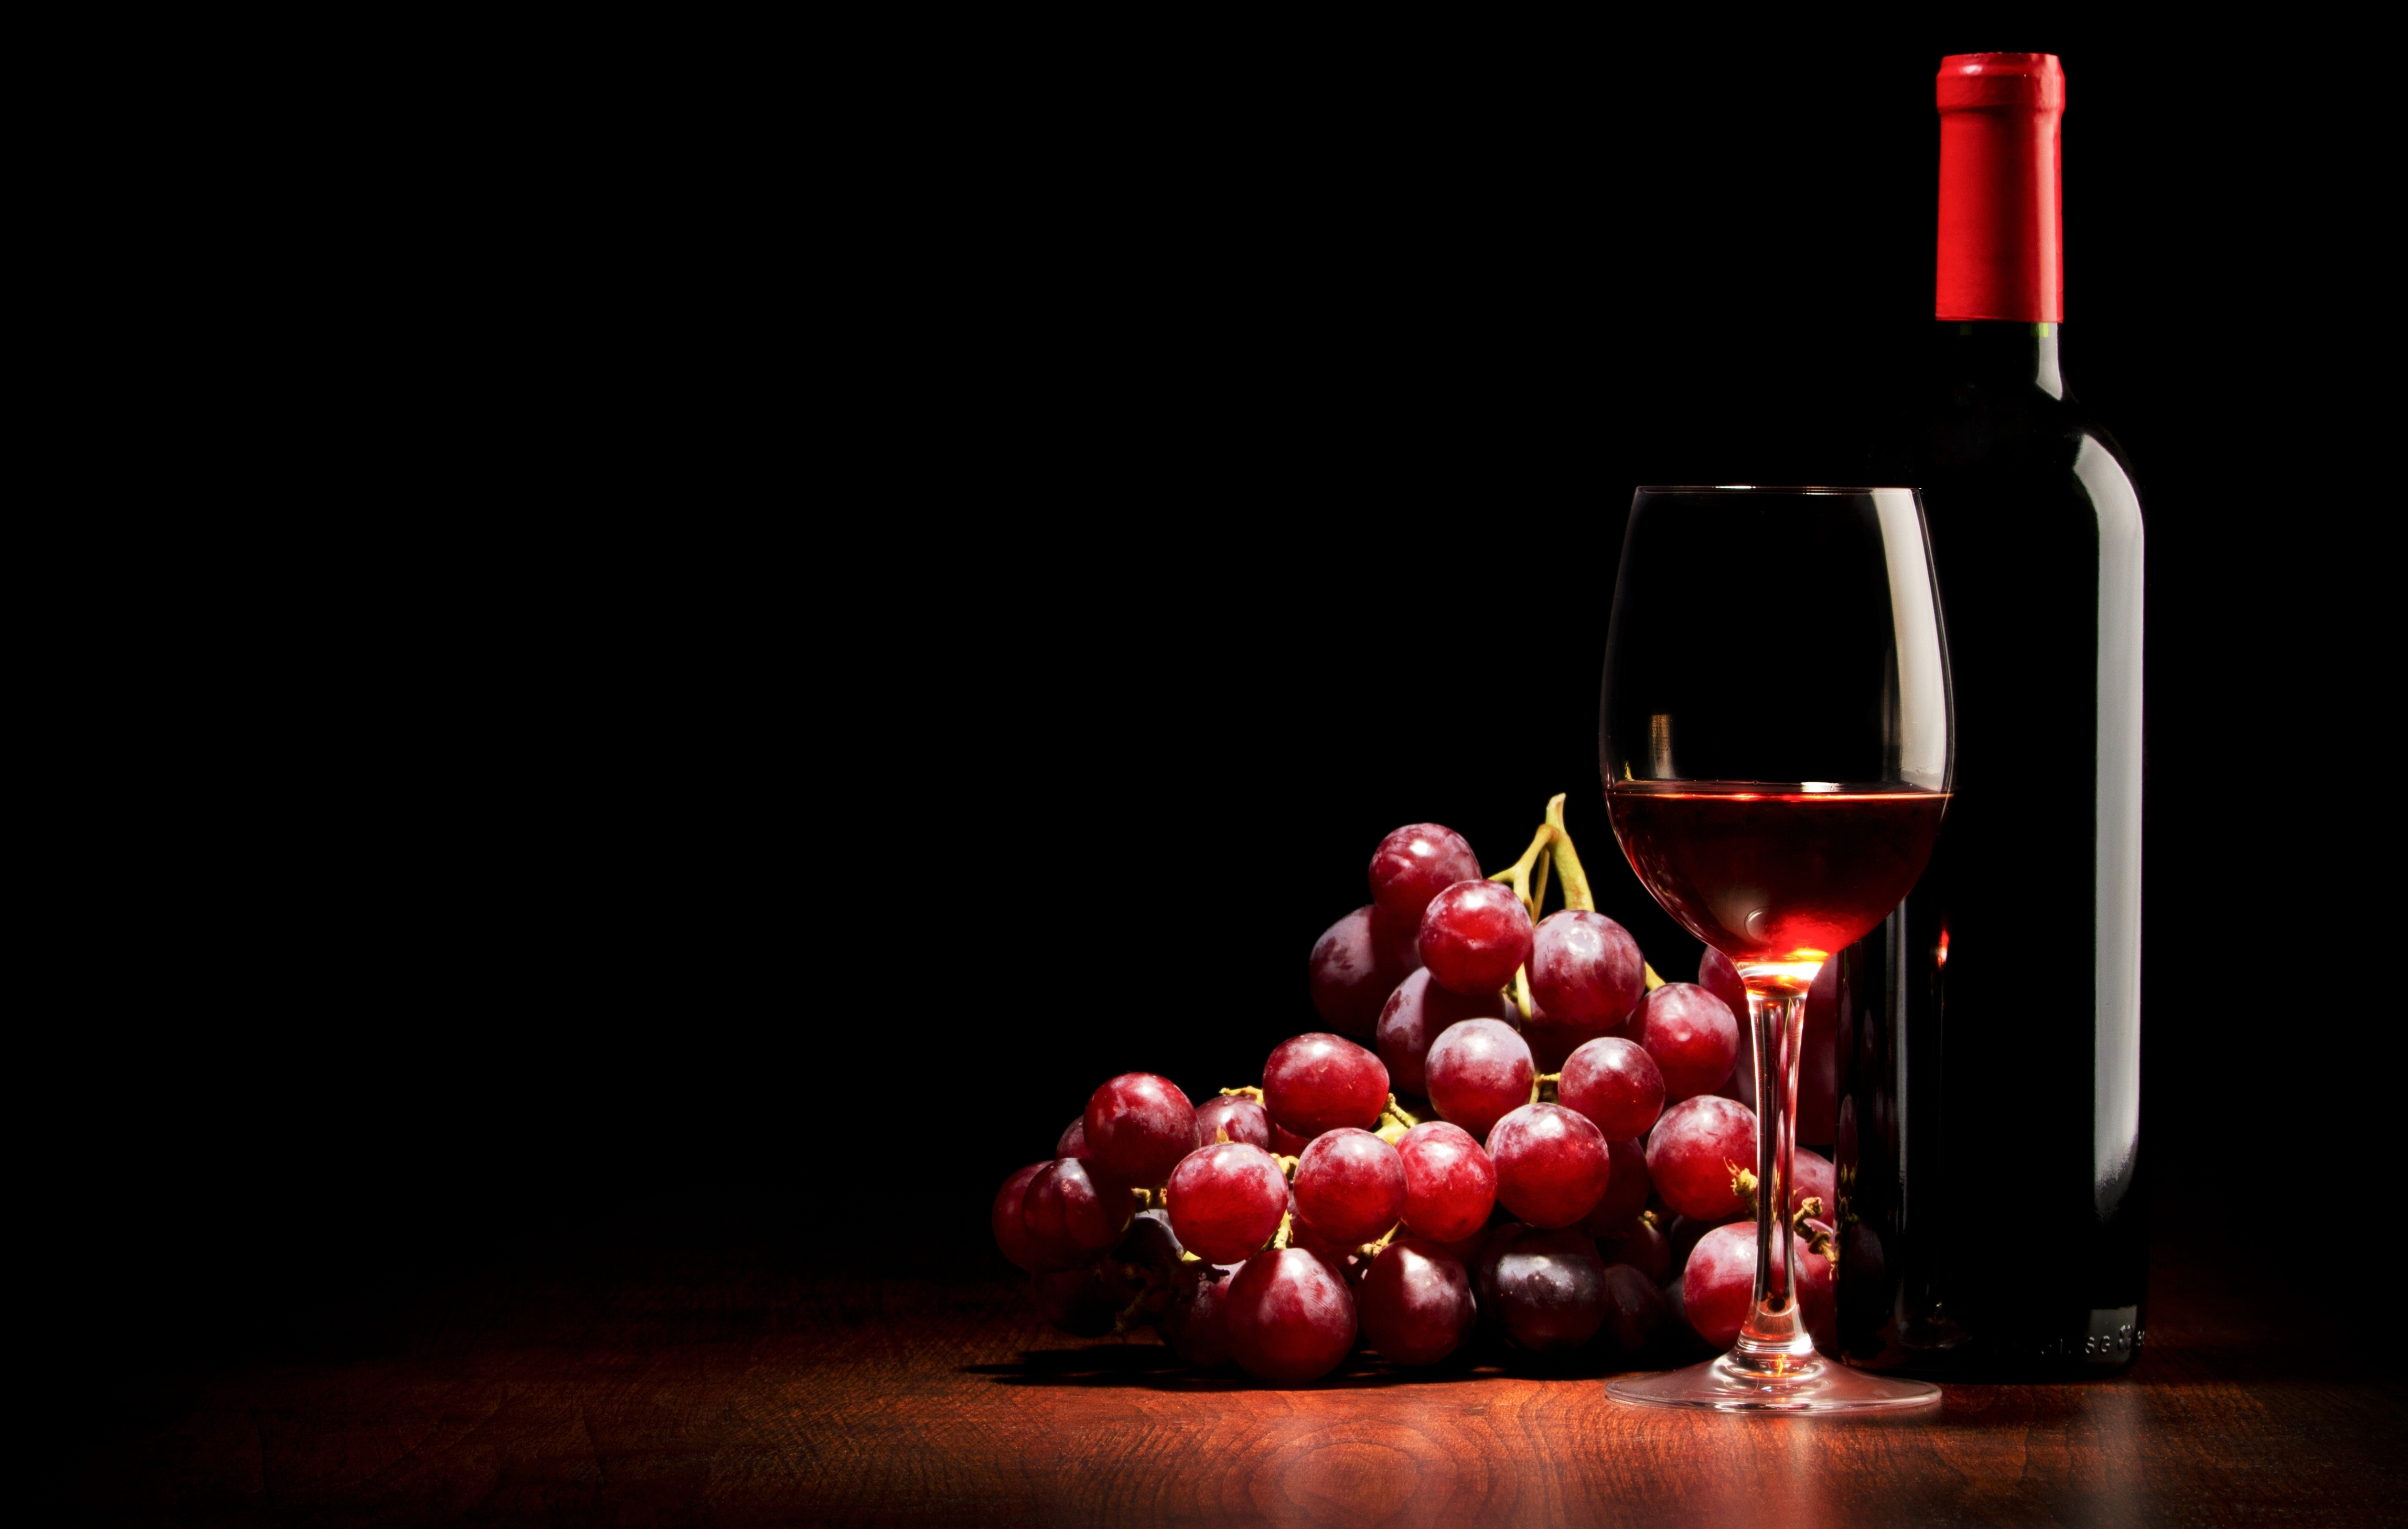 HQ Wine Wallpapers | File 2335.92Kb